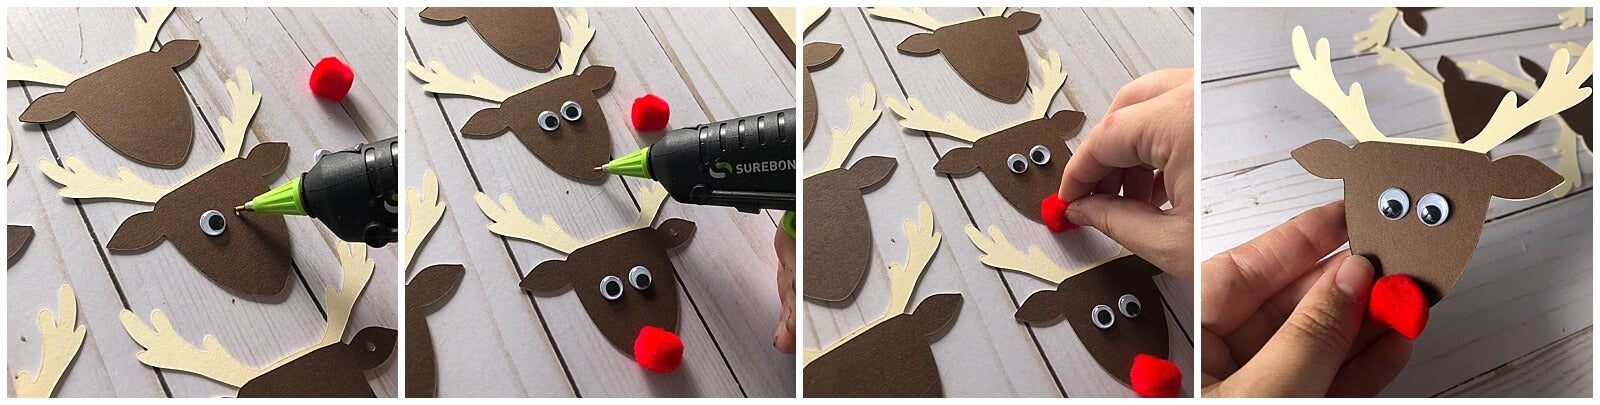 Cardstock Paper Reindeer Christmas Gift Tags Kids Craft Gluing